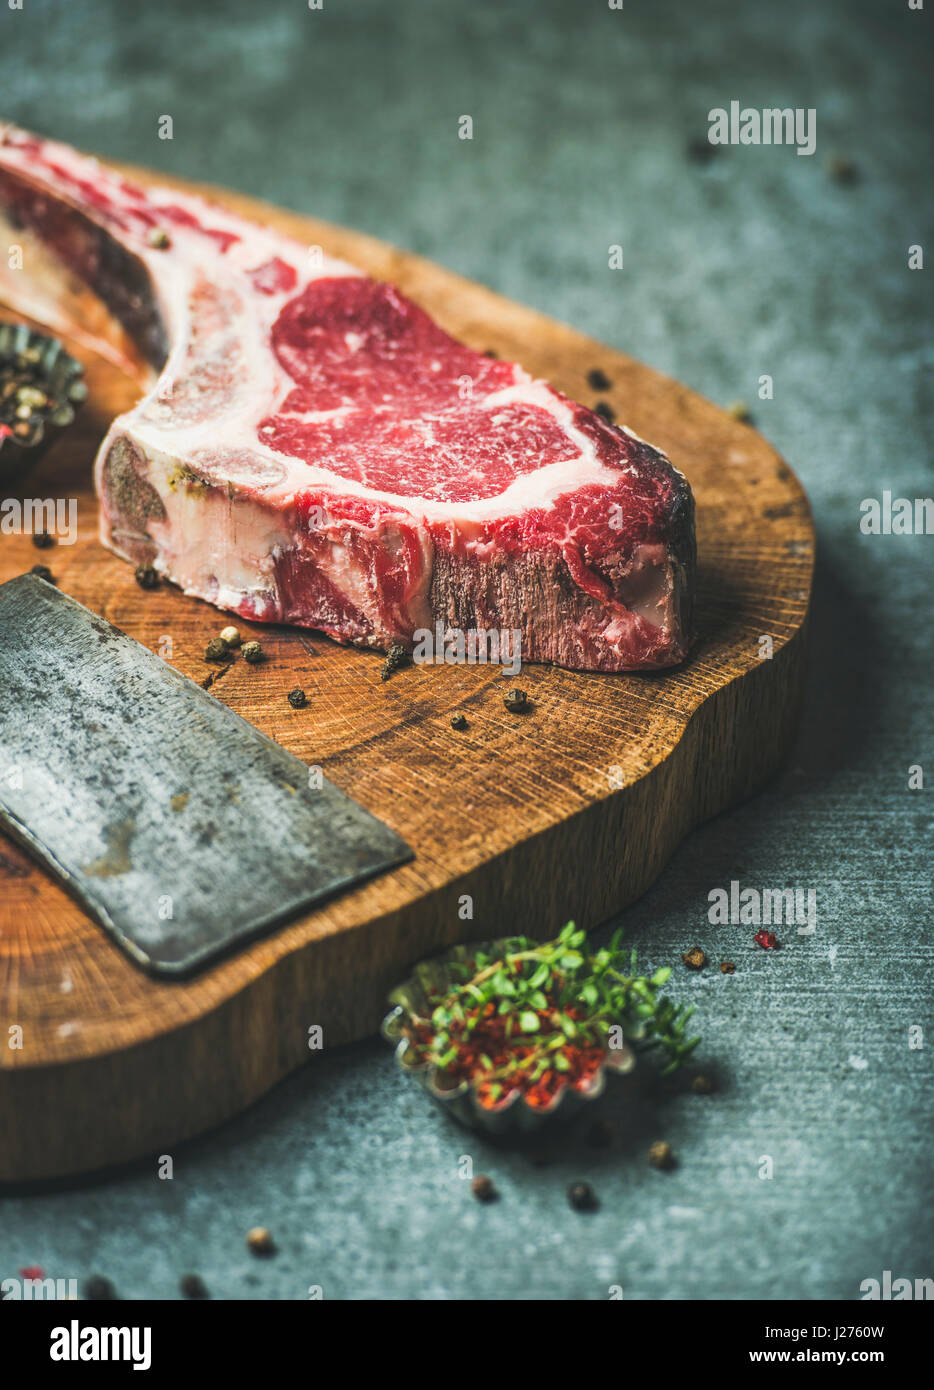 Dry aged raw beef rib eye steak with bone, butcher meat chopping knife and spices on wooden board over grey concrete Stock Photo